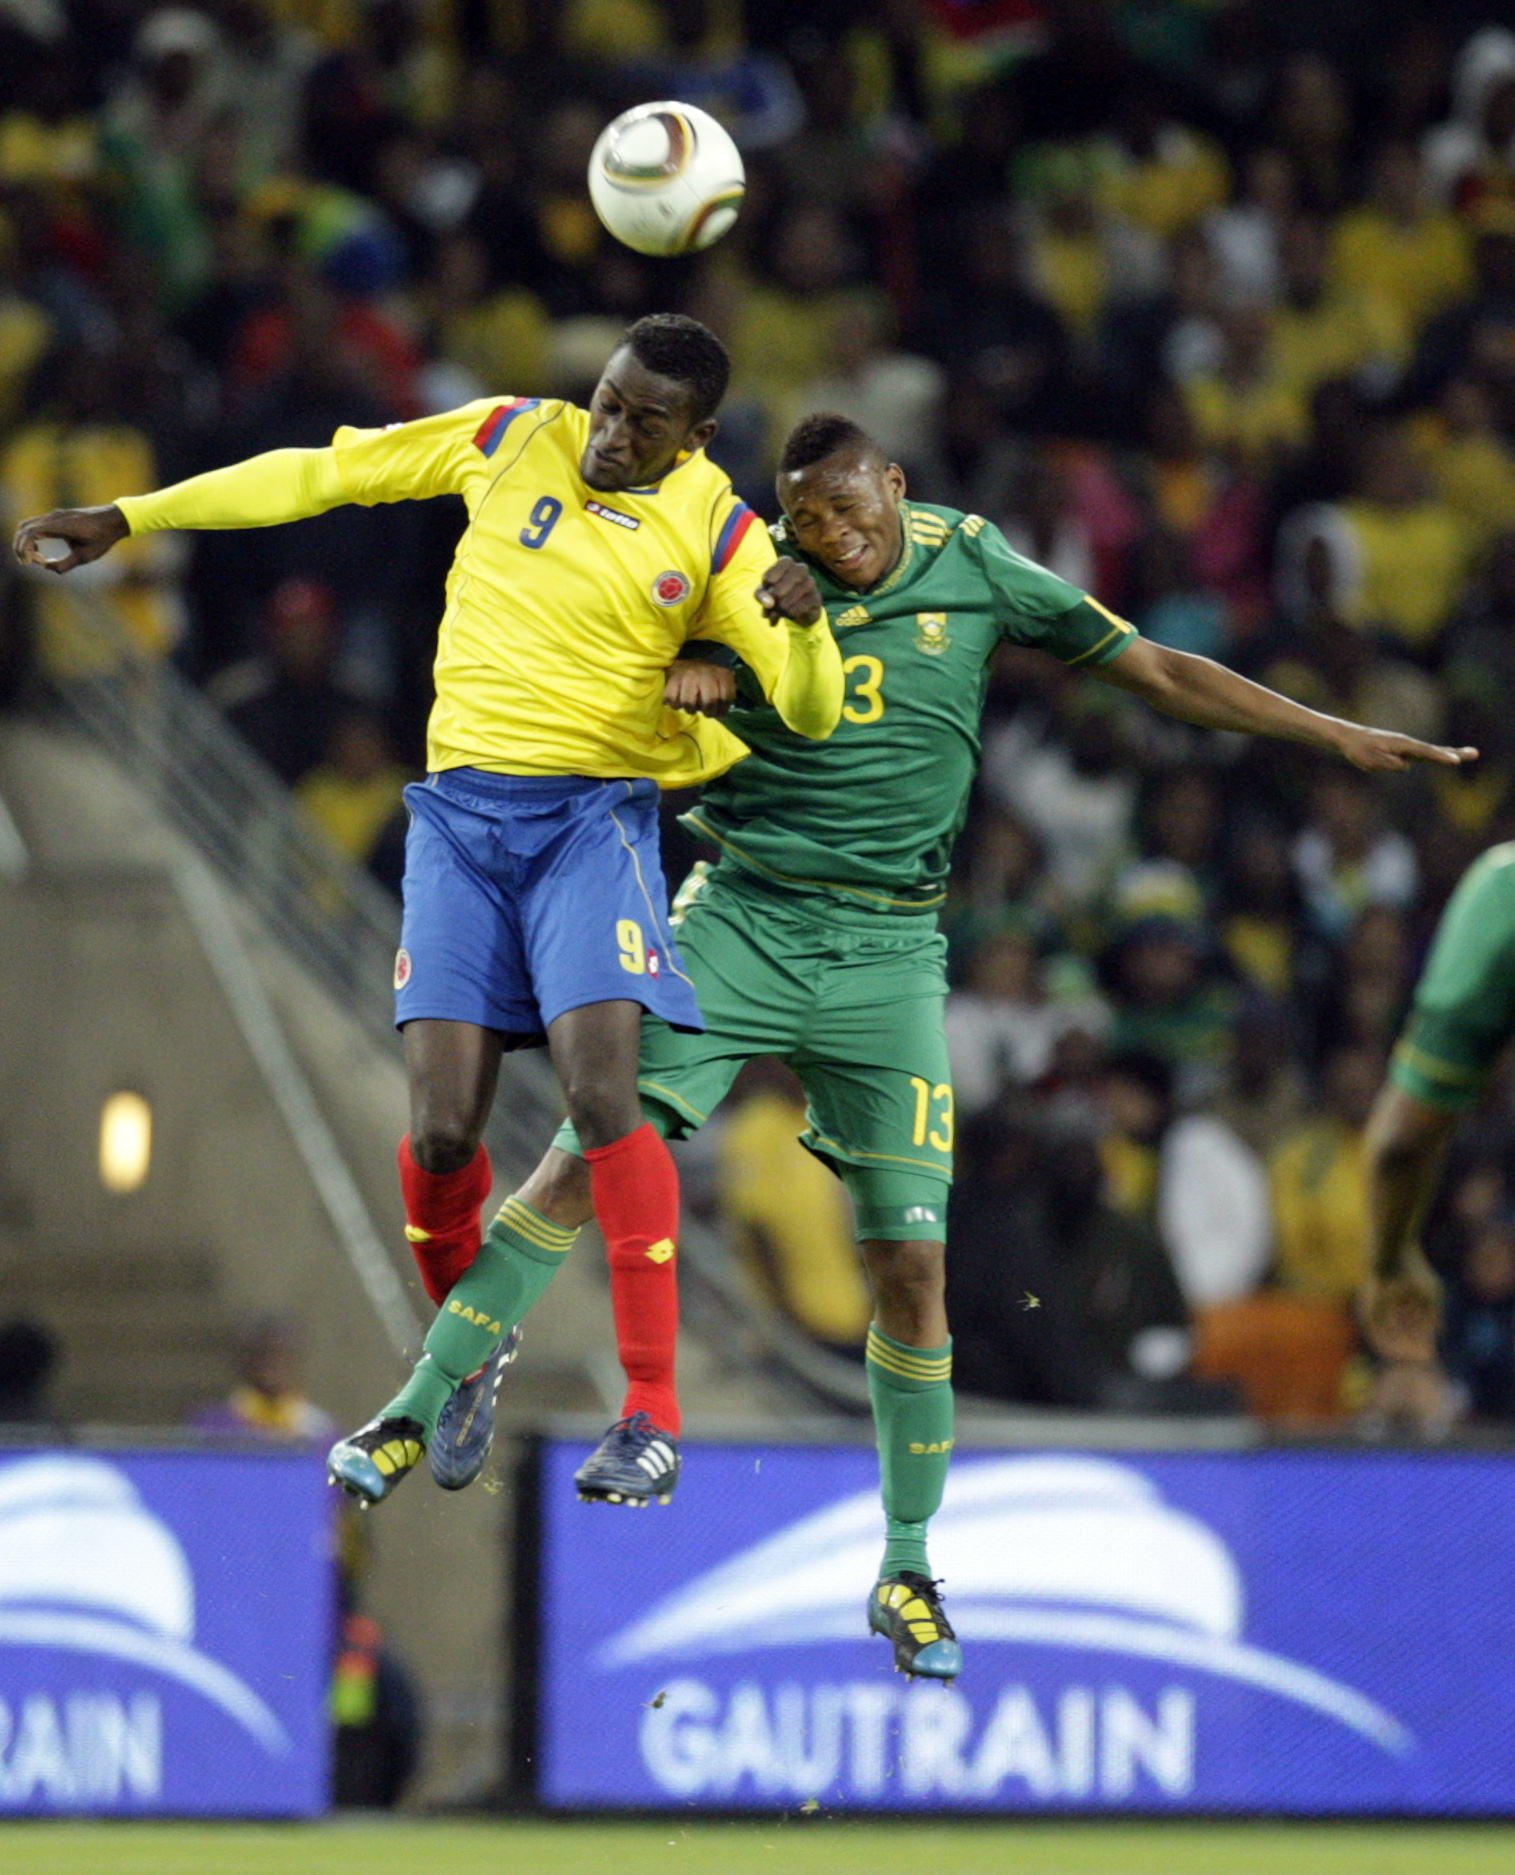 South Africa's Kagisho Dikgacoi, right, defends against Colombia's Jackson Martinez, left, during their international warm-up soccer match at the Socc...